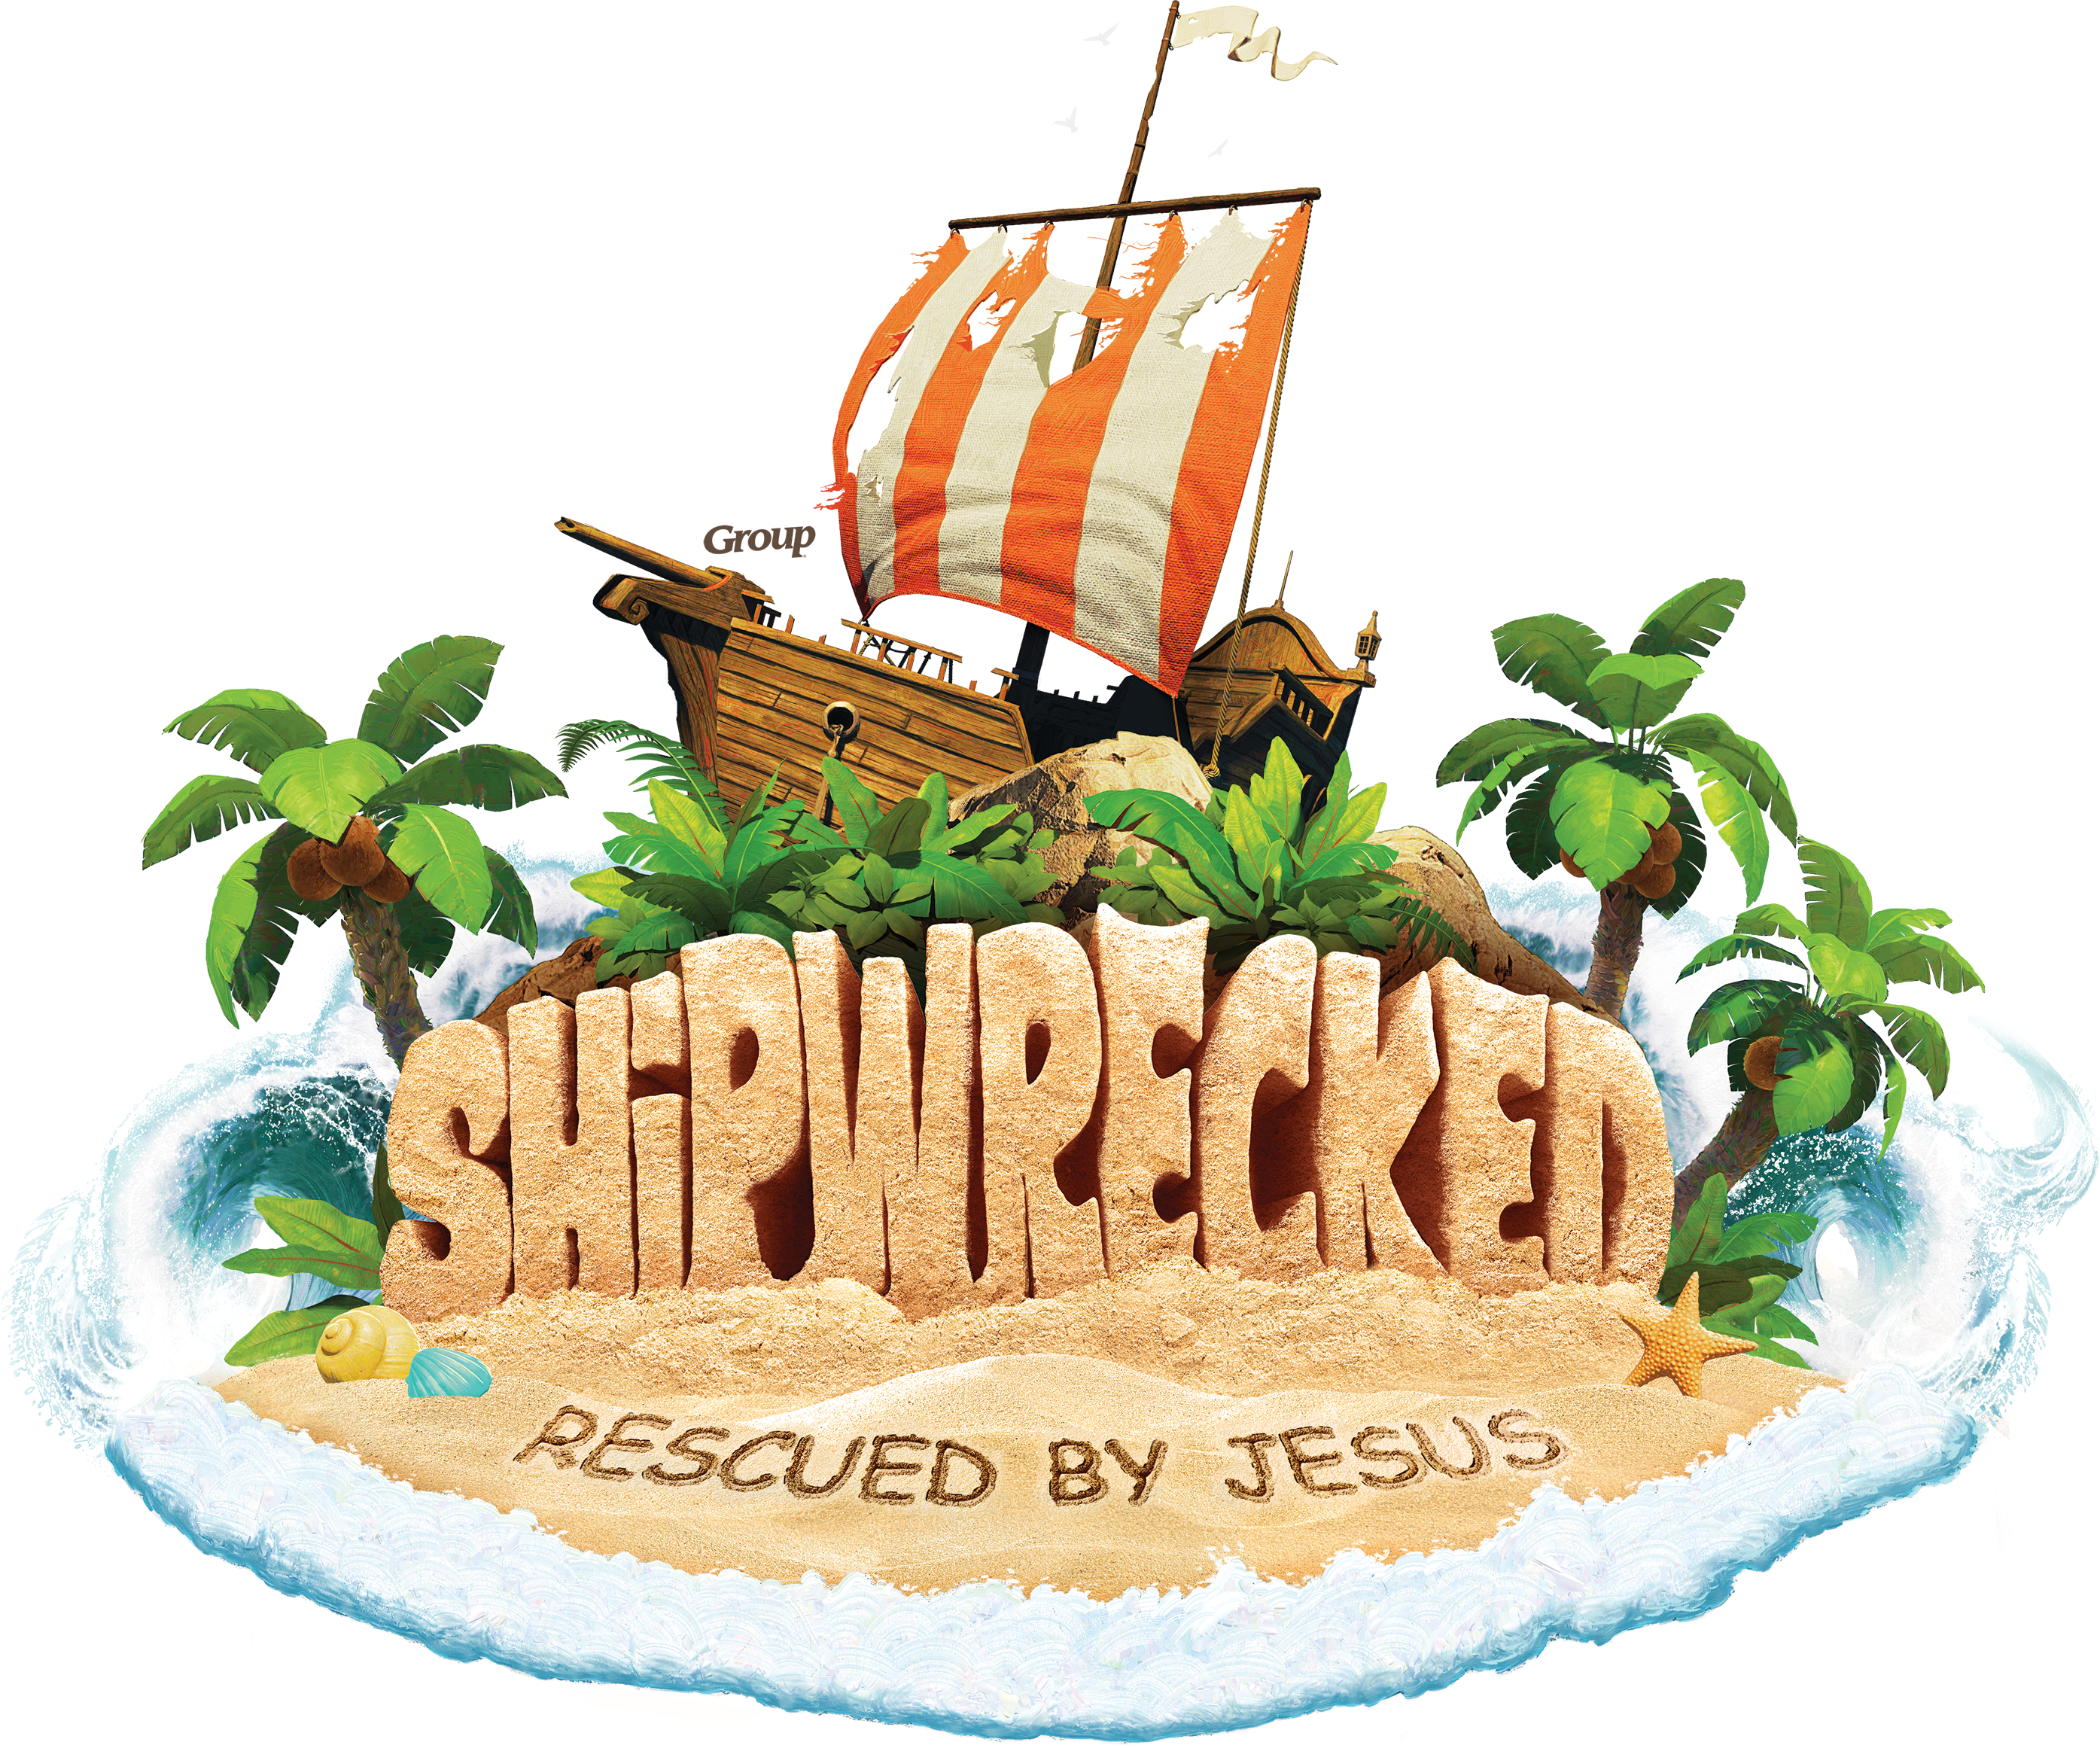 Shipwrecked vbs free resources. Missions clipart scripture